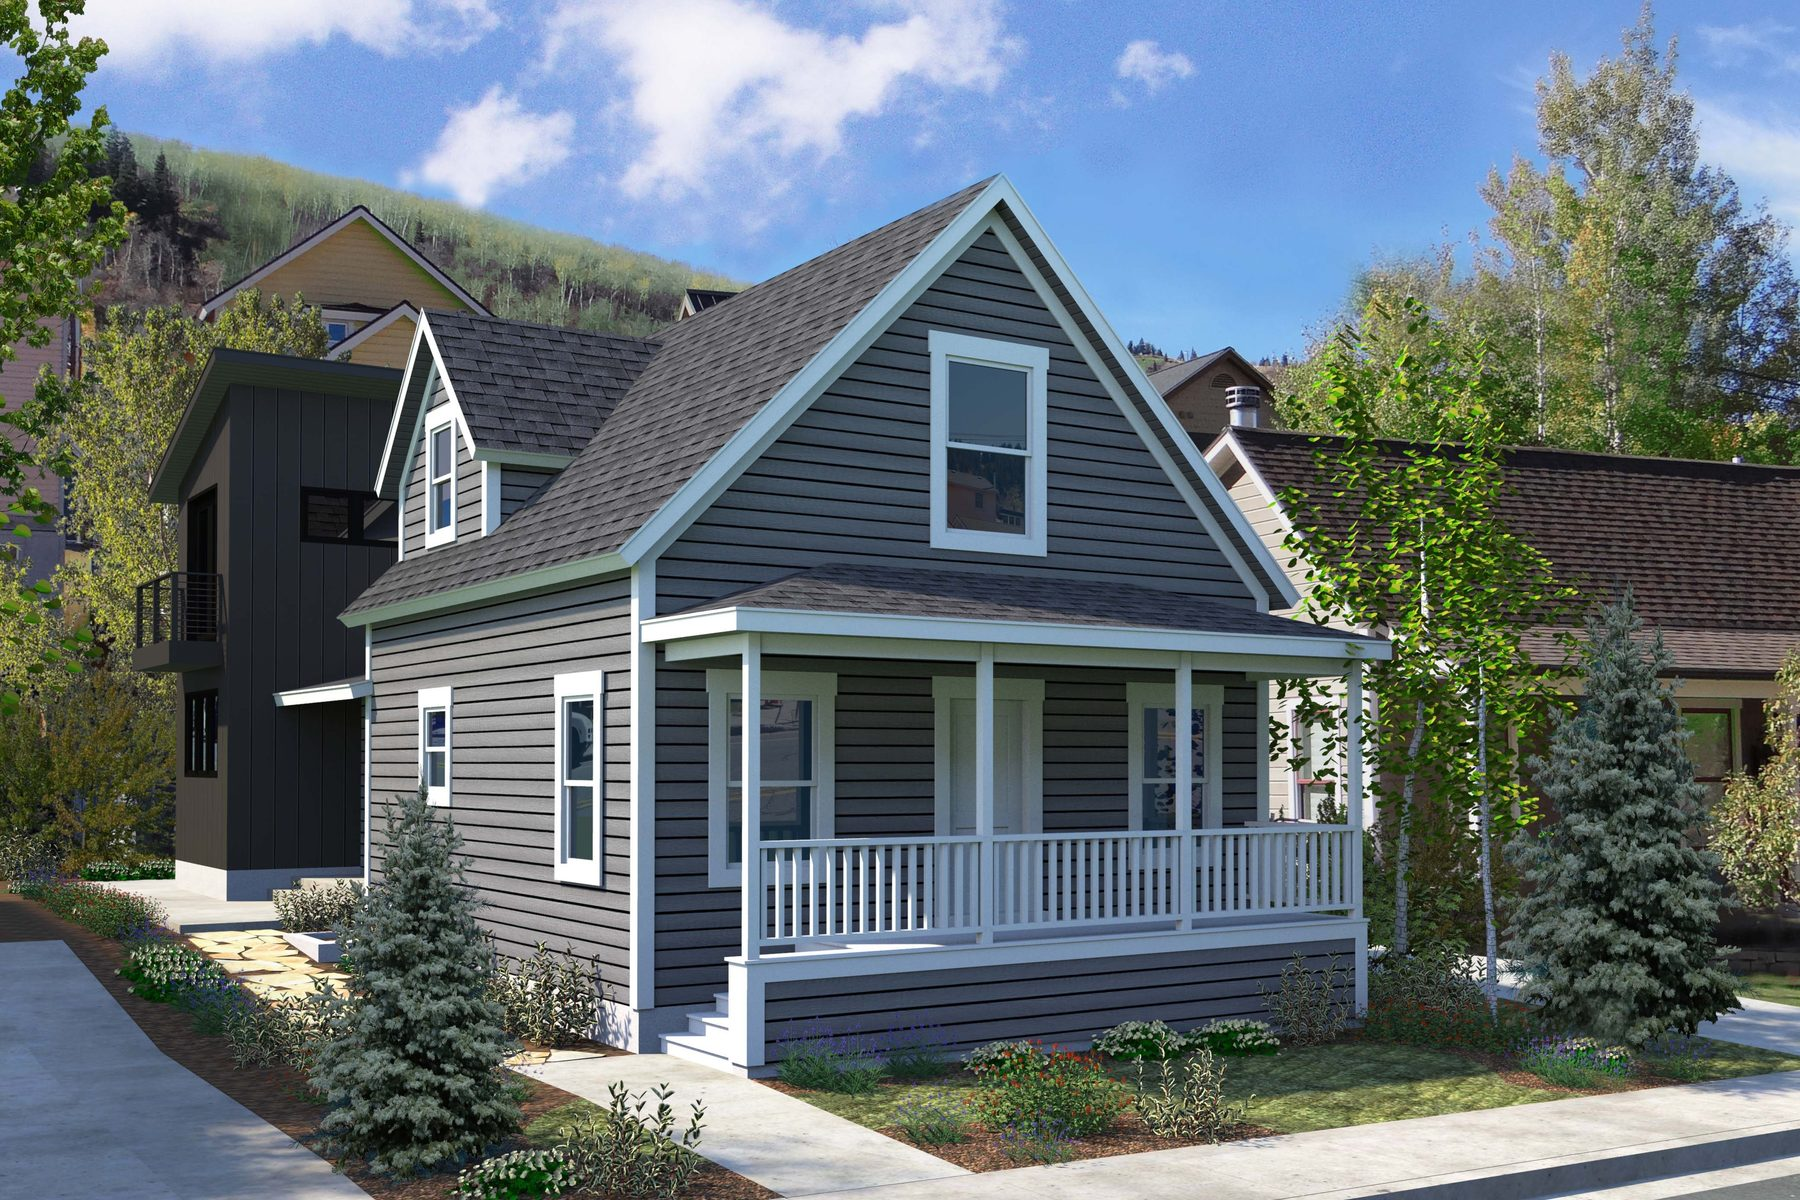 Single Family Home for Sale at Custom Home in the Heart of Park City 923 Park Ave Park City, Utah, 84060 United States